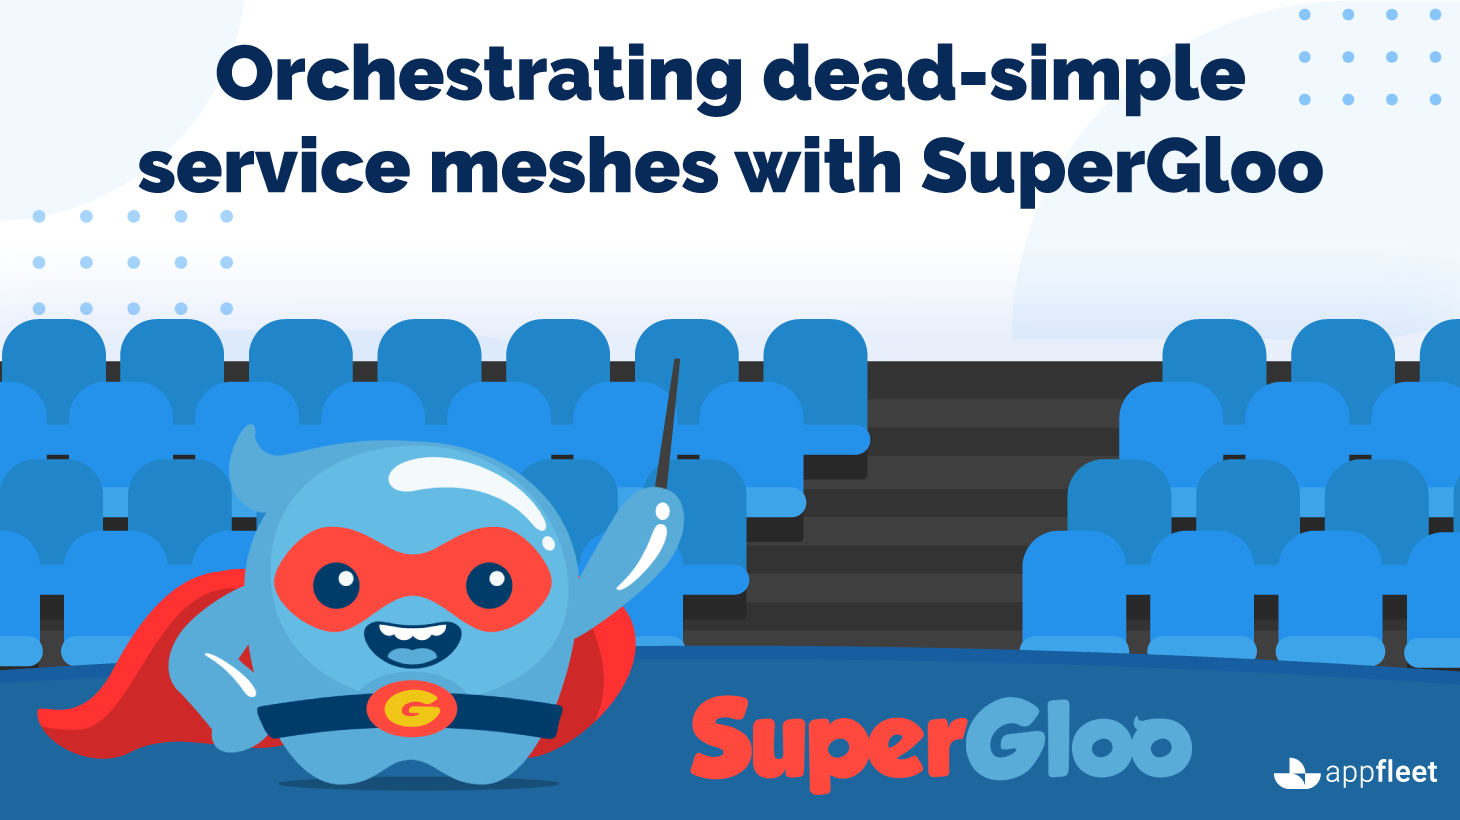 Orchestrating dead-simple service meshes with SuperGloo